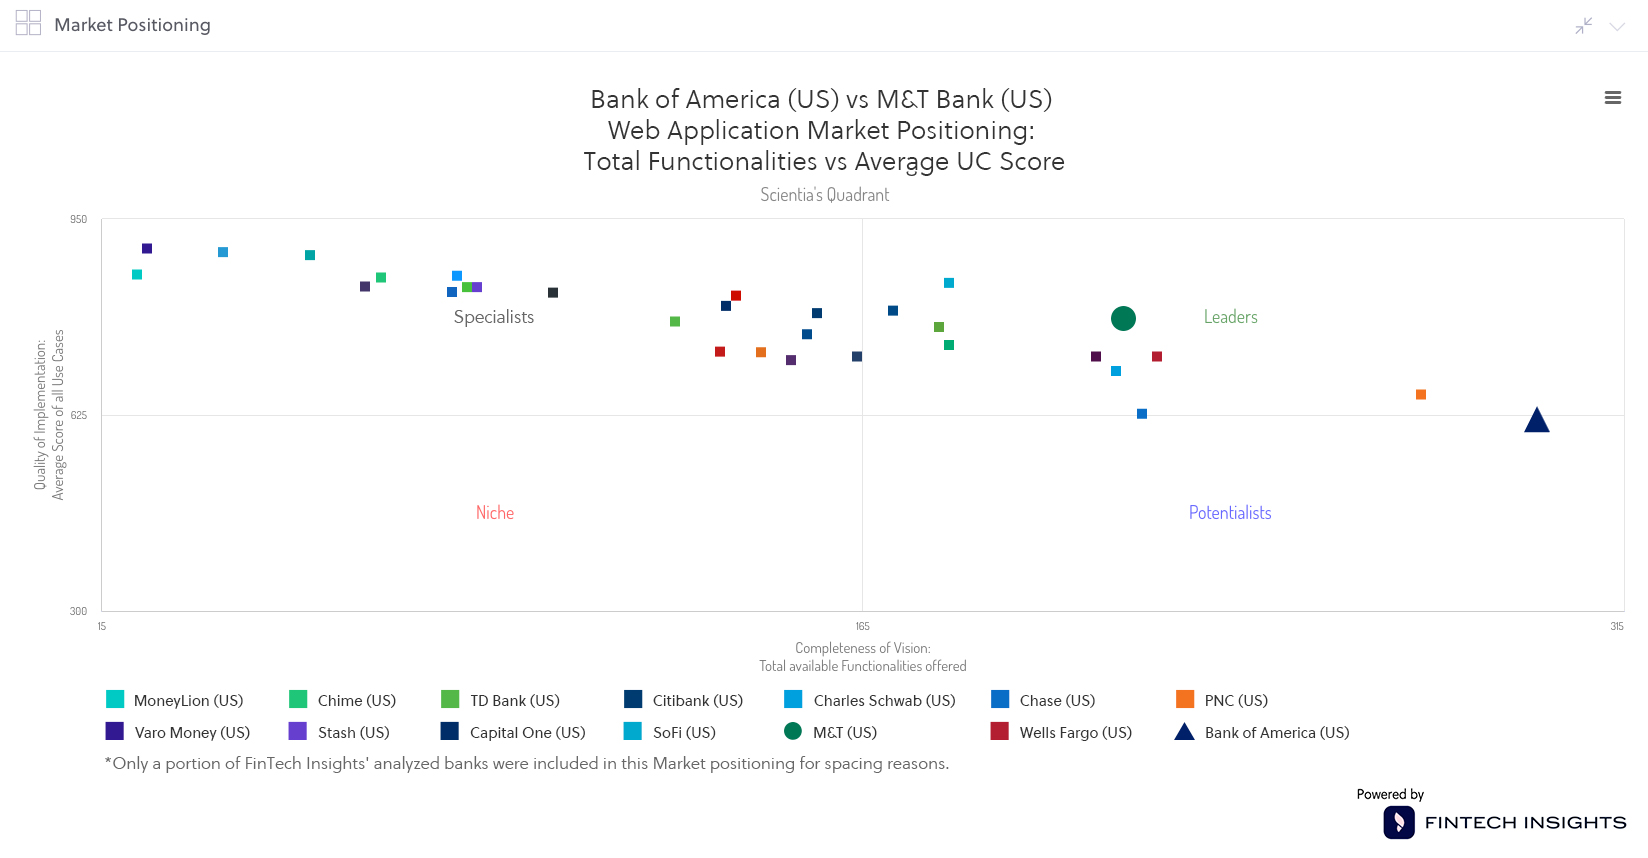 Positioning for the Web channel in the US Market BofA vs M&T bank